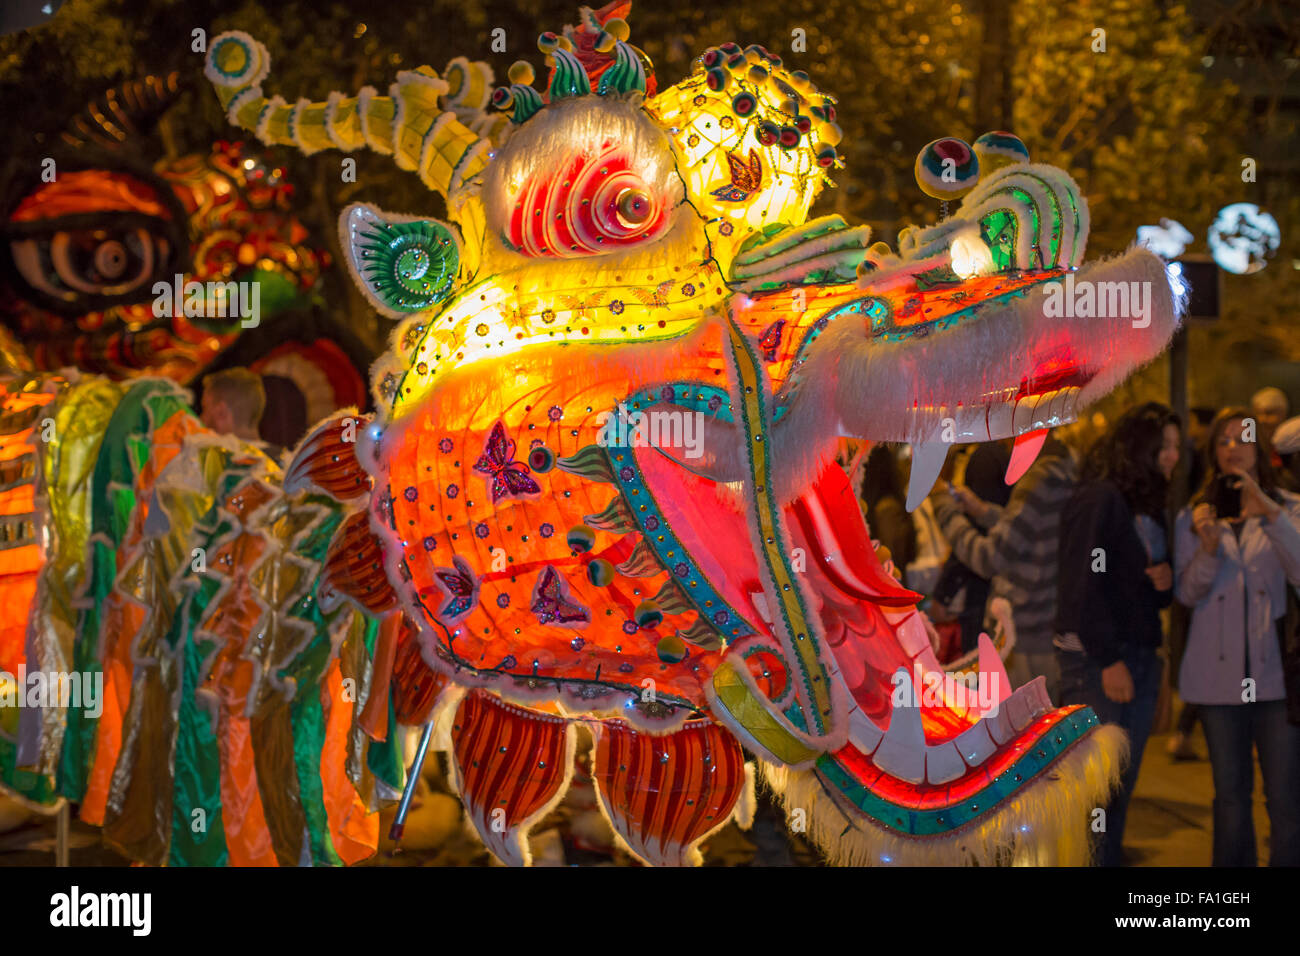 illuminated dragon at san francisco chinese new year night parade with woman in background taking picture - San Francisco Chinese New Year